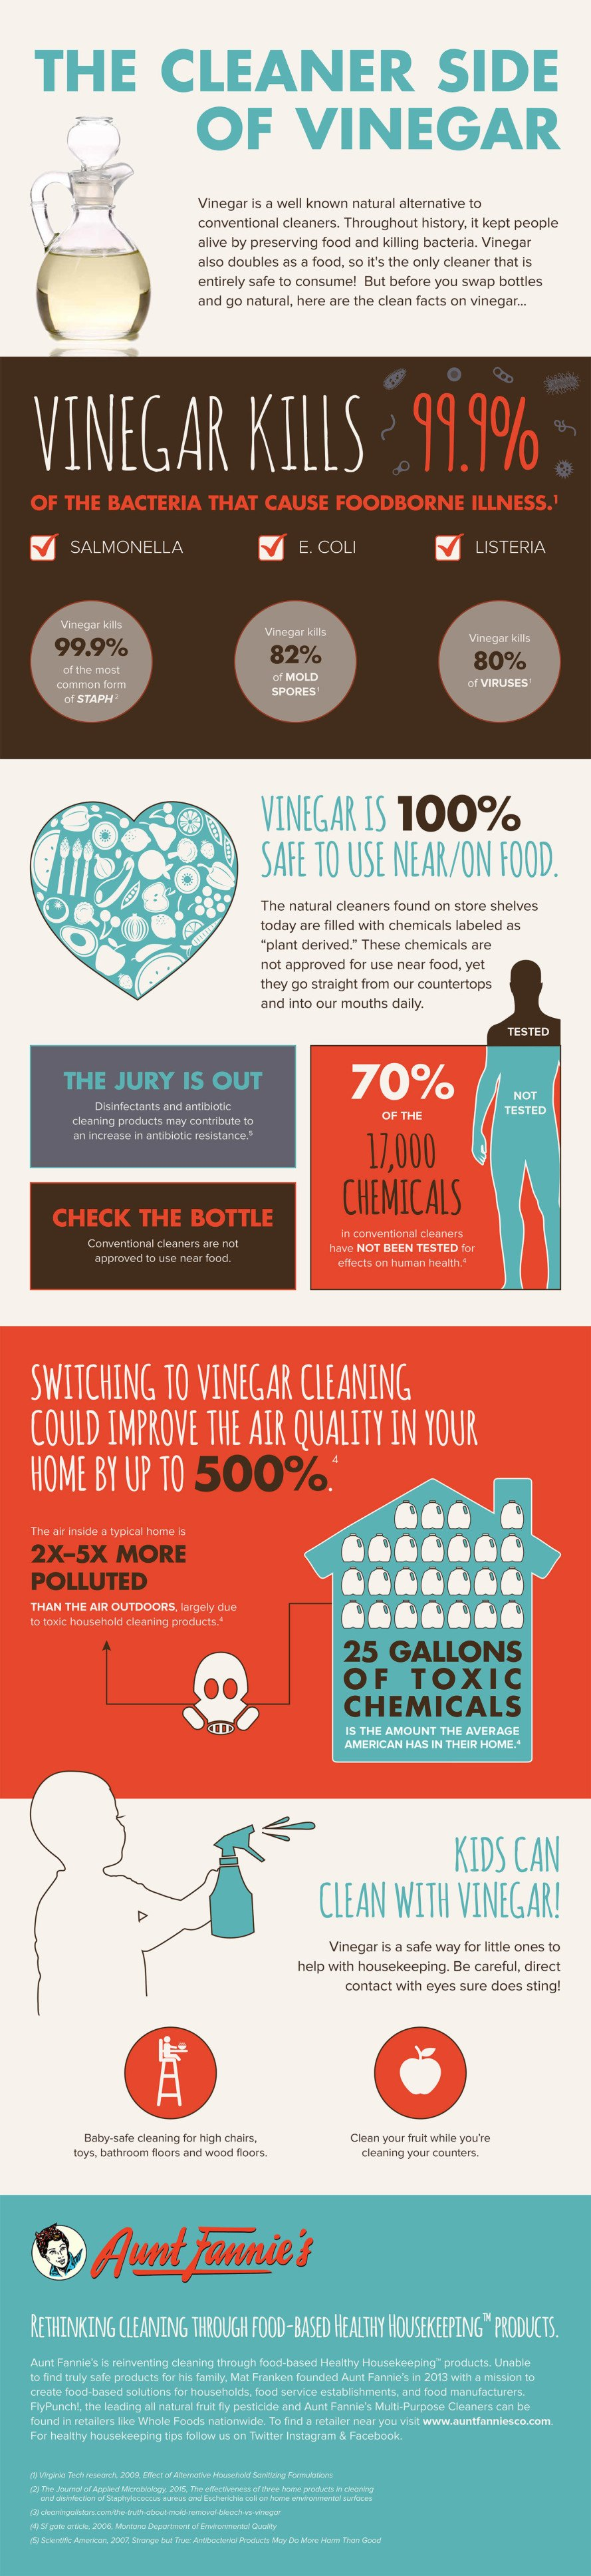 Vinegar: The Clean Facts - Infographic